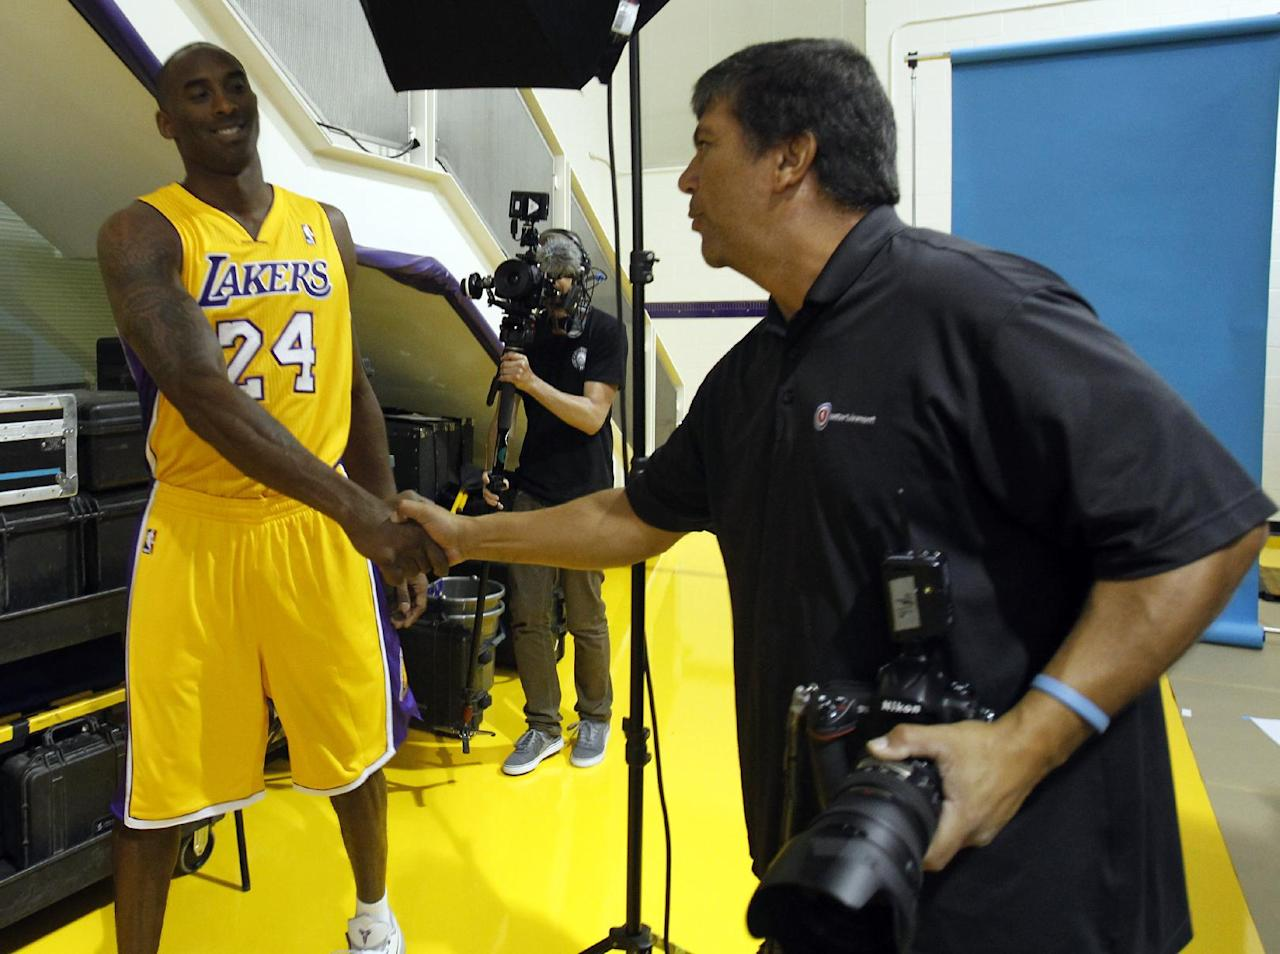 Los Angeles Lakers guard Kobe Bryant, left, shakes hands with NBA photographer Juan Ocampo during their NBA basketball media day at the team's headquarters on Saturday, Sept. 28, 2013, in El Segundo, Calif.  (AP Photo/Alex Gallardo)